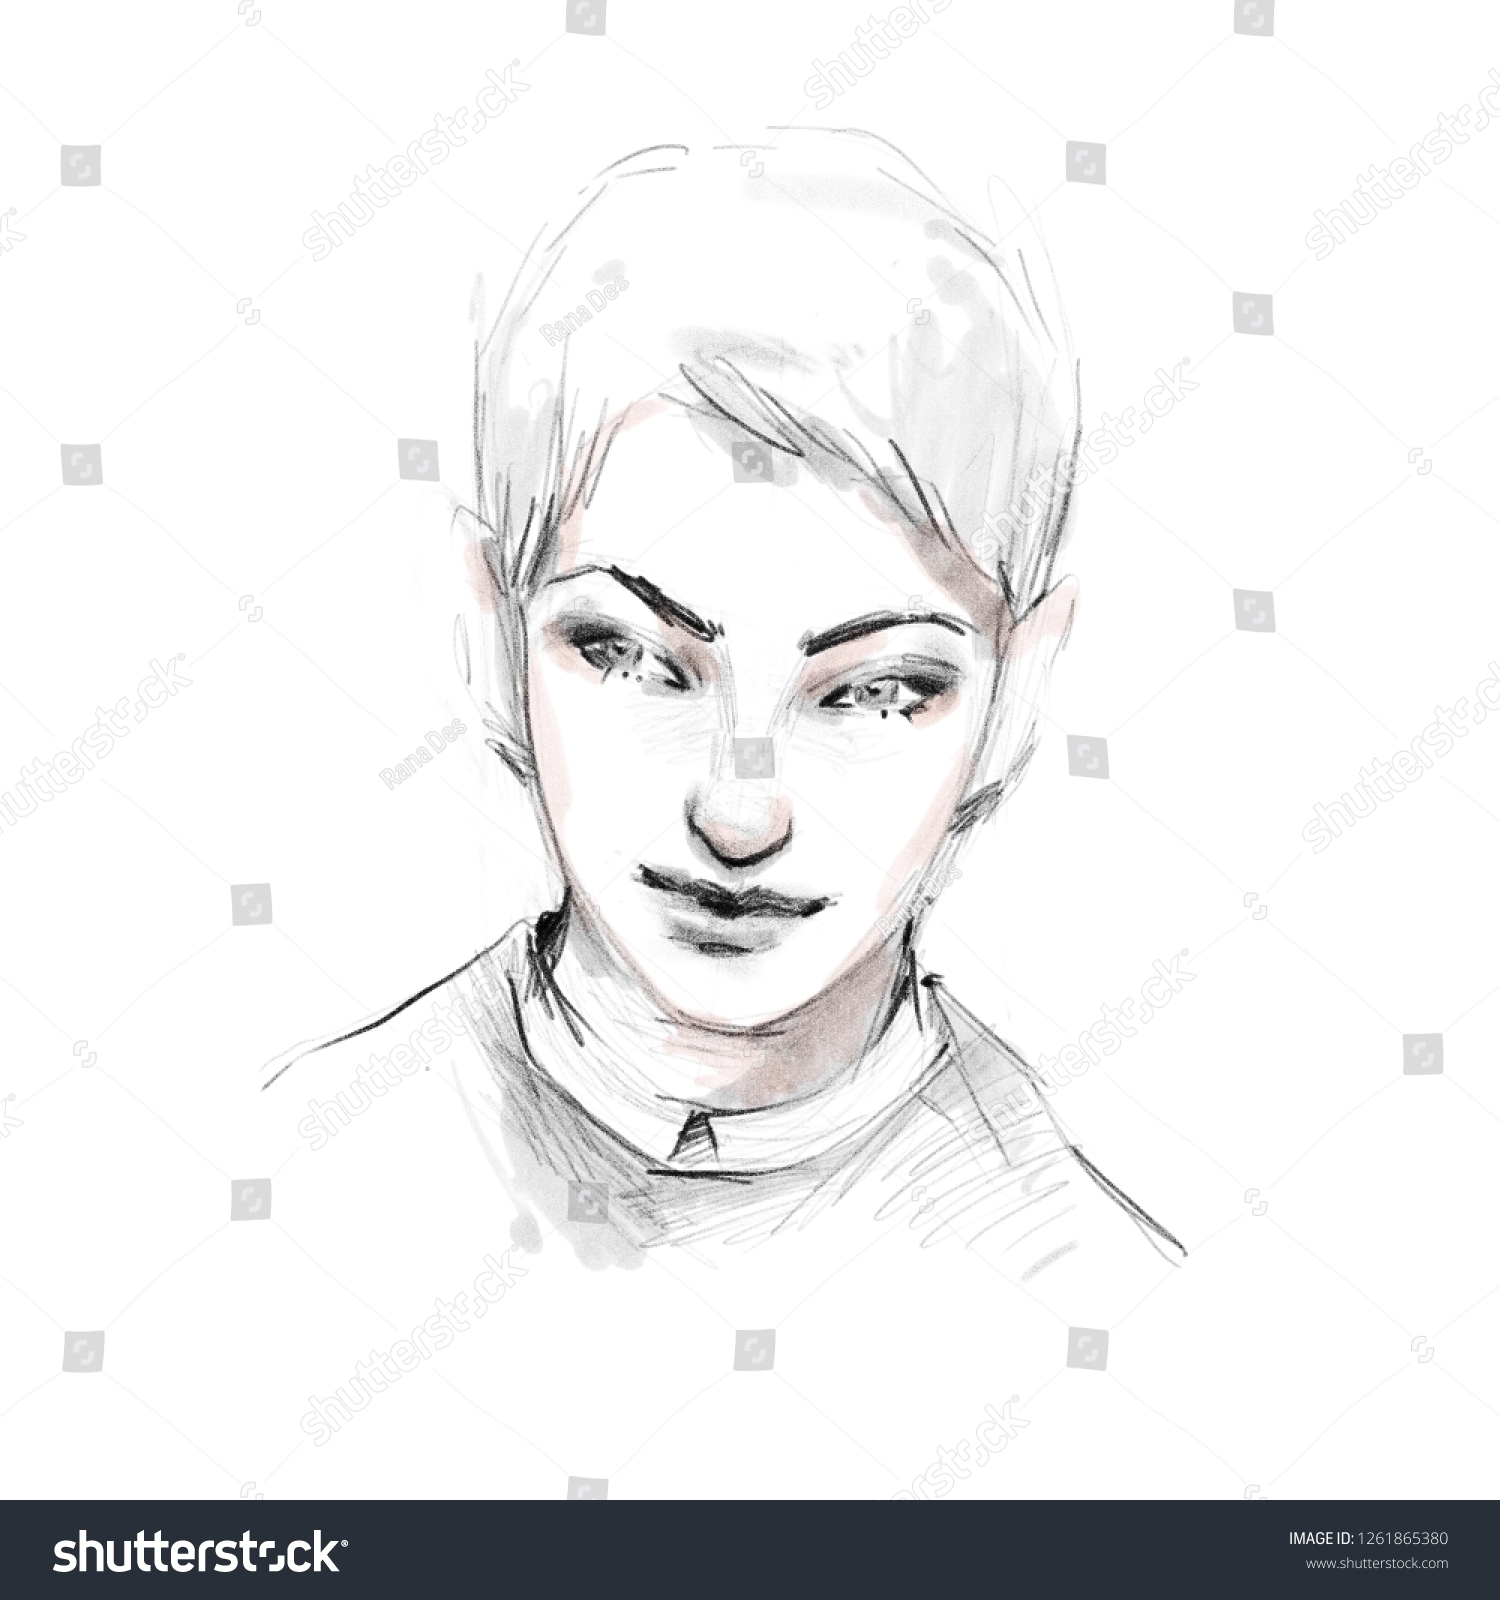 Handsome guy face black and white pencil sketch fashion illustration hand drawn attractive young man